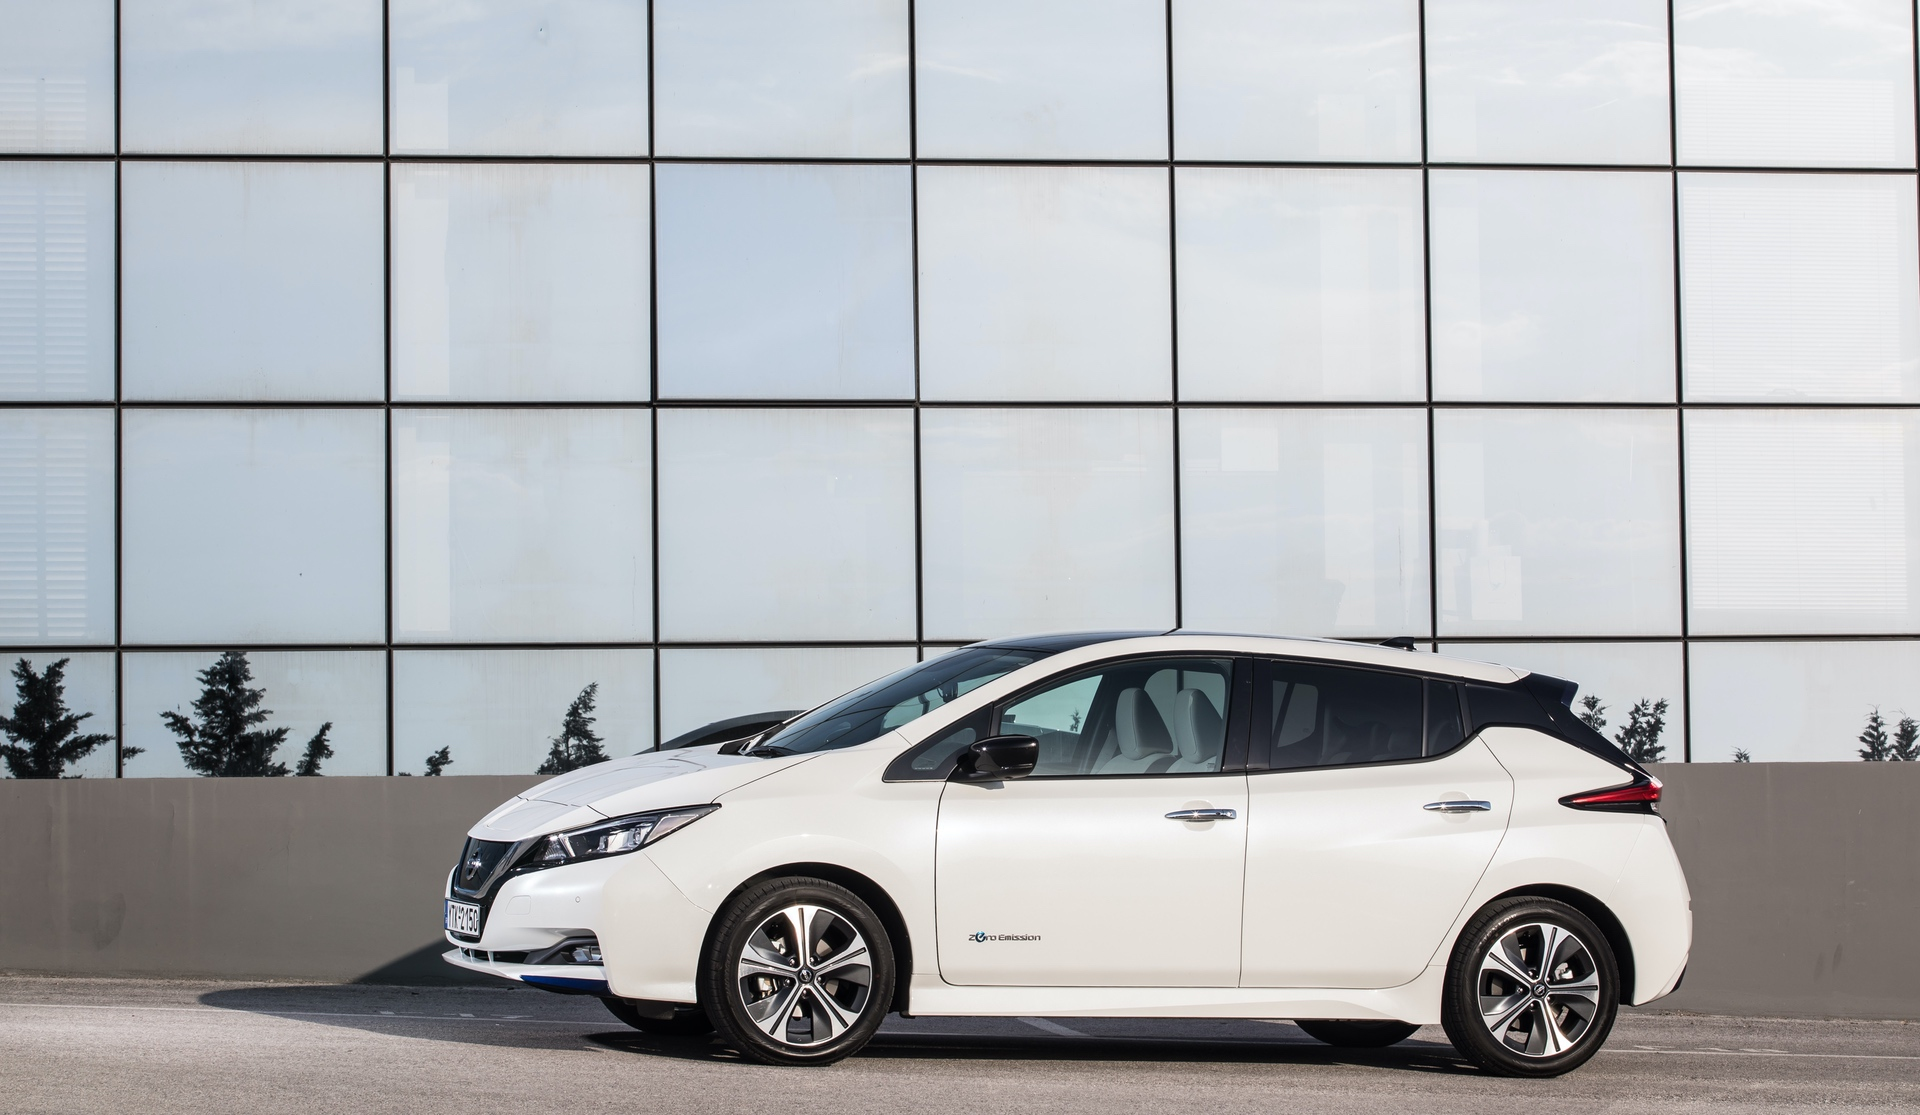 Nissan_Leaf_greek_presskit_0006